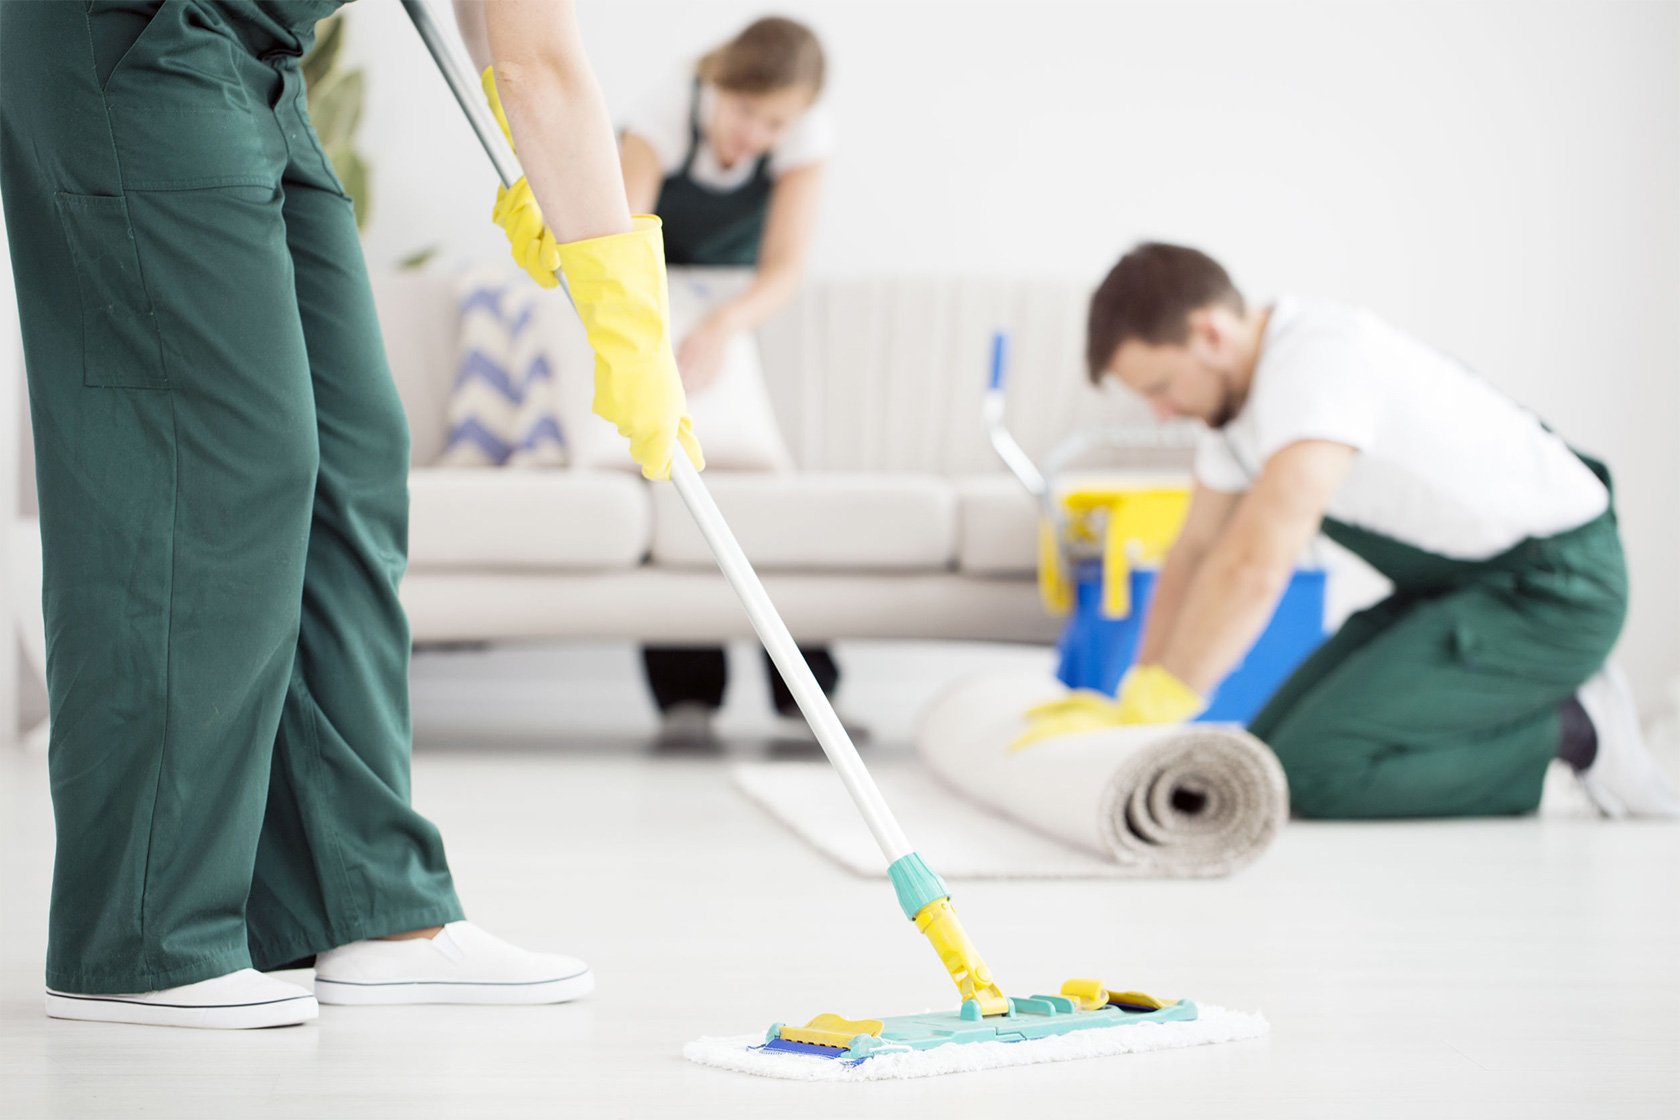 Professional Carpet Cleaning Company